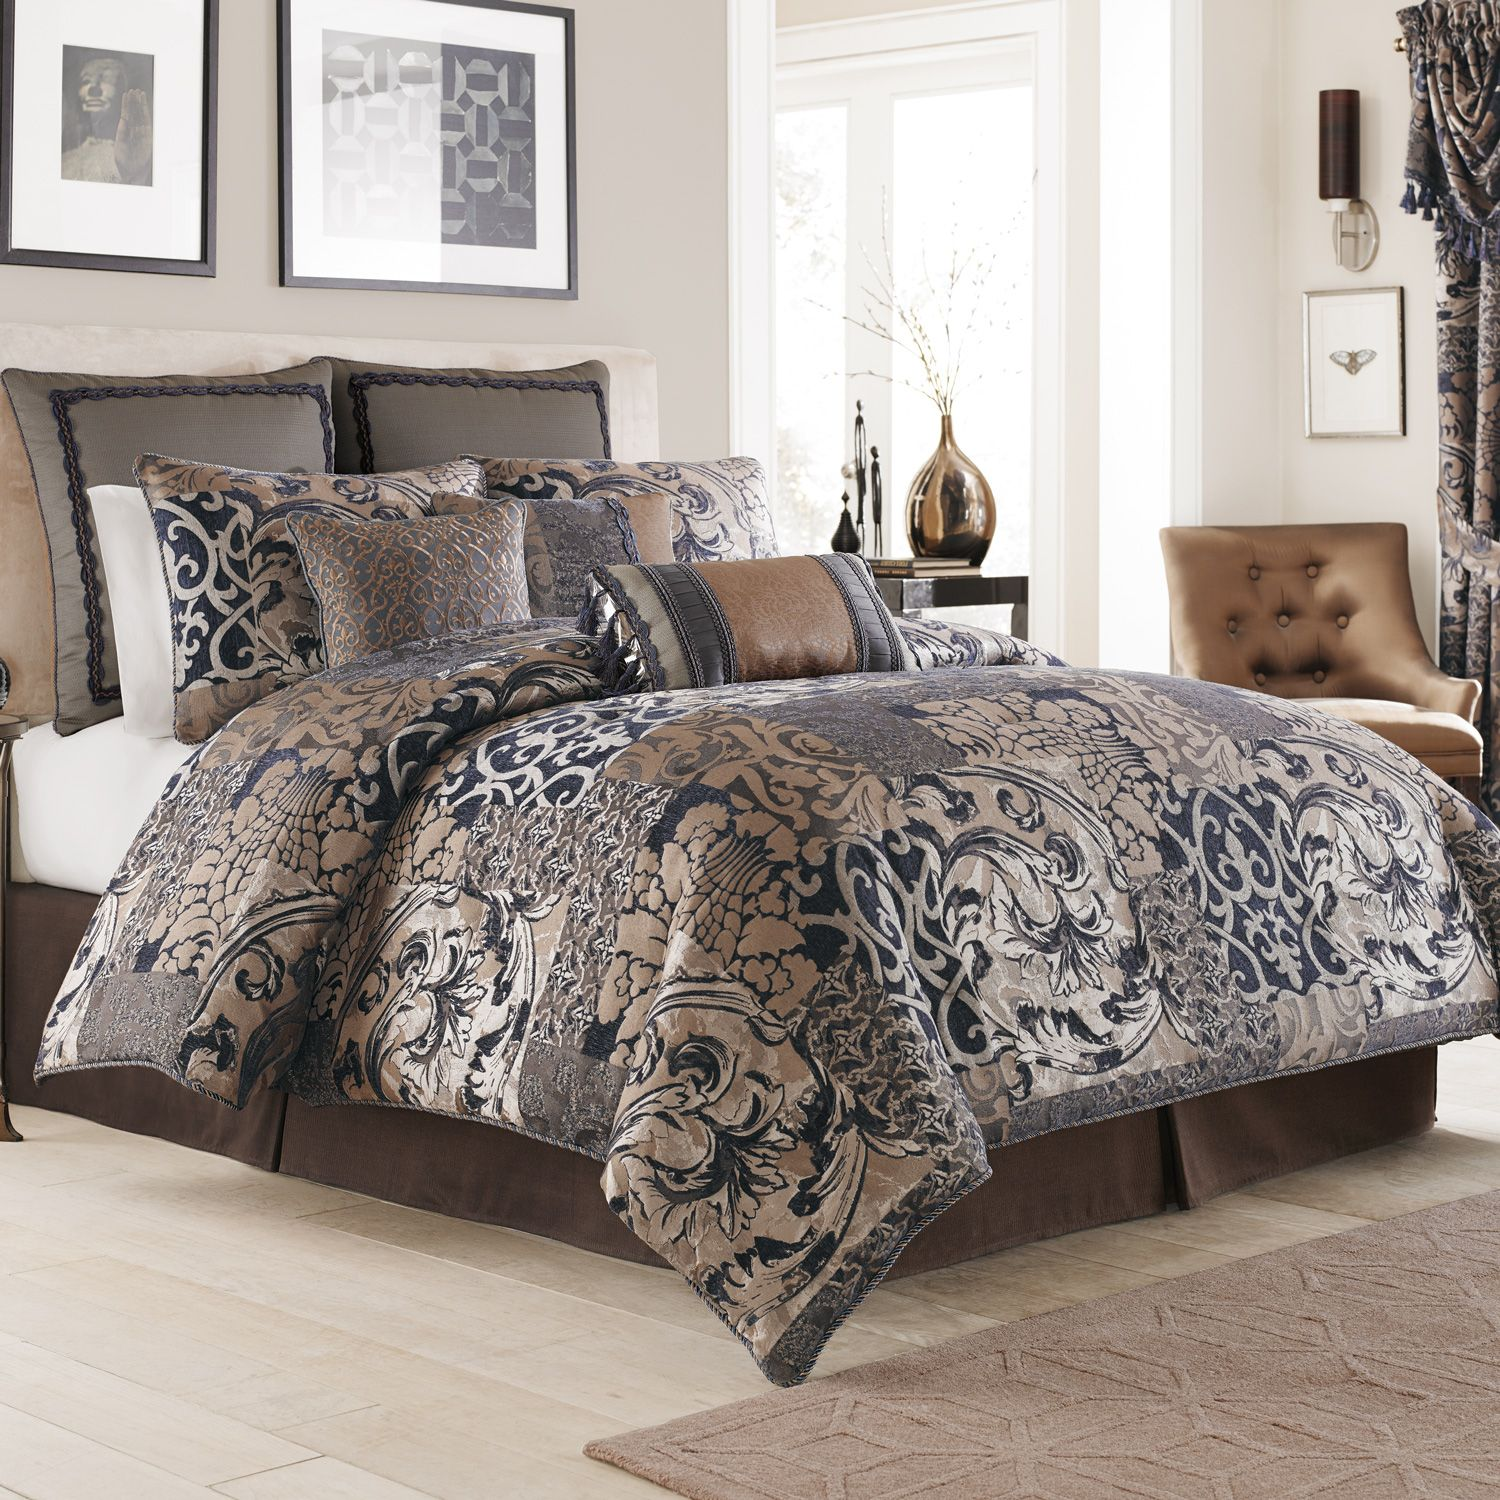 Chic queen size comforter sets for bedroom design with cheap queen size comforter sets